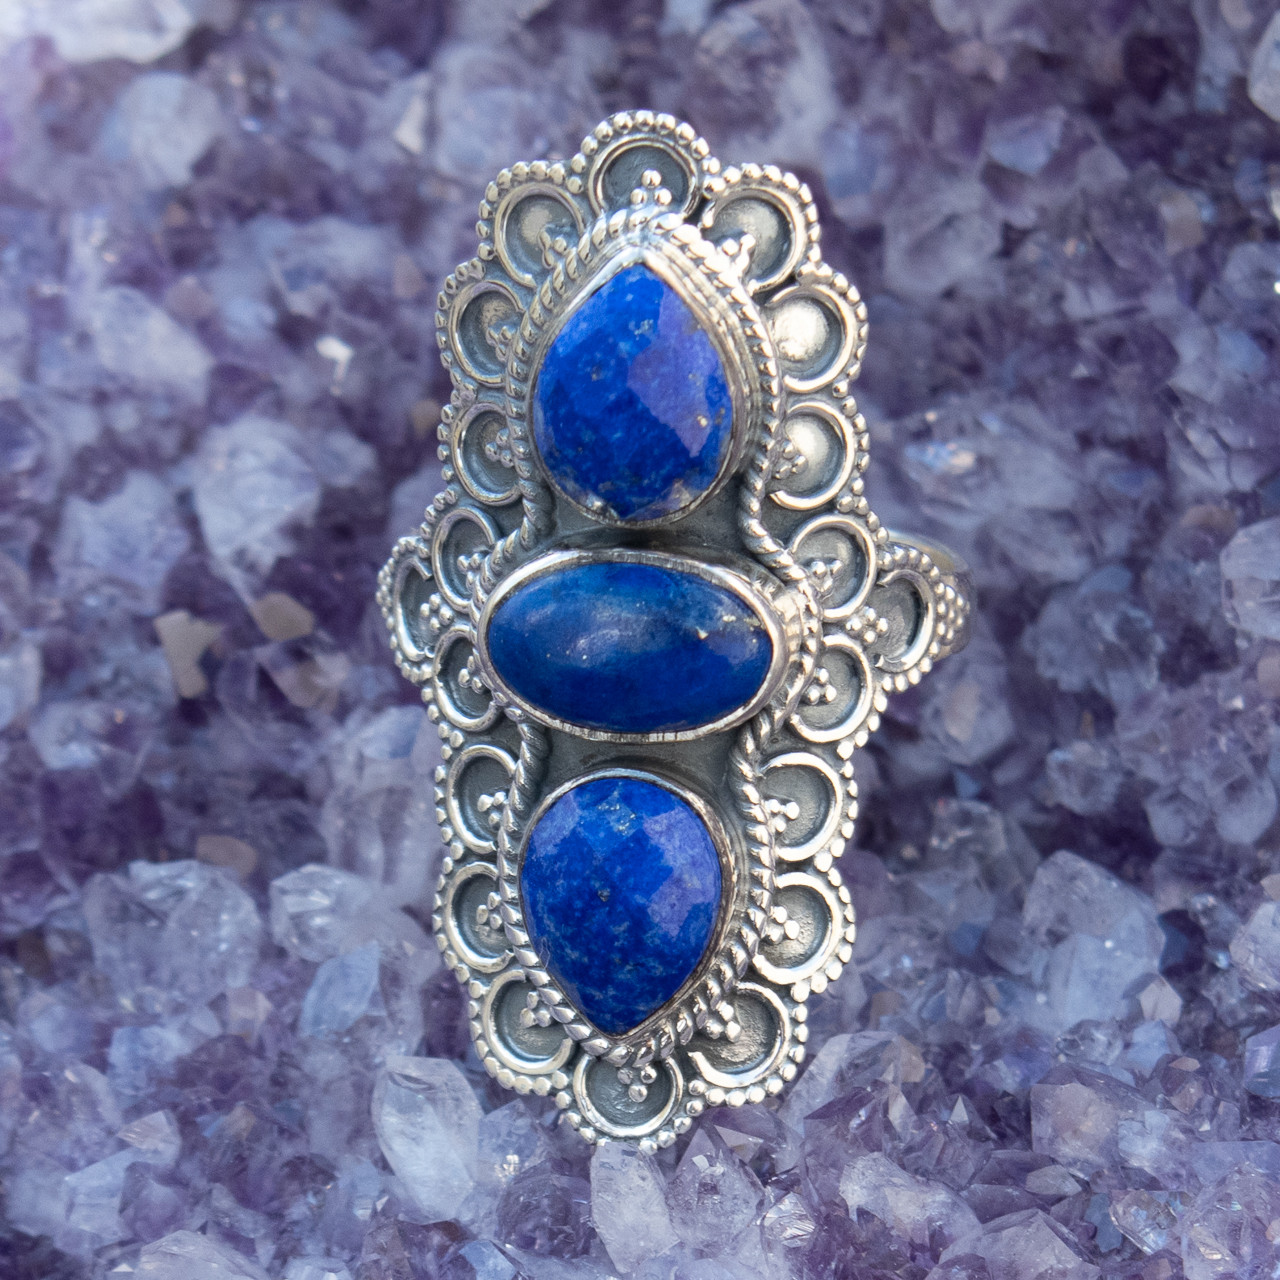 US size 9.25 Small women/'s ring in Silver 925 and lapis lazuli size 60